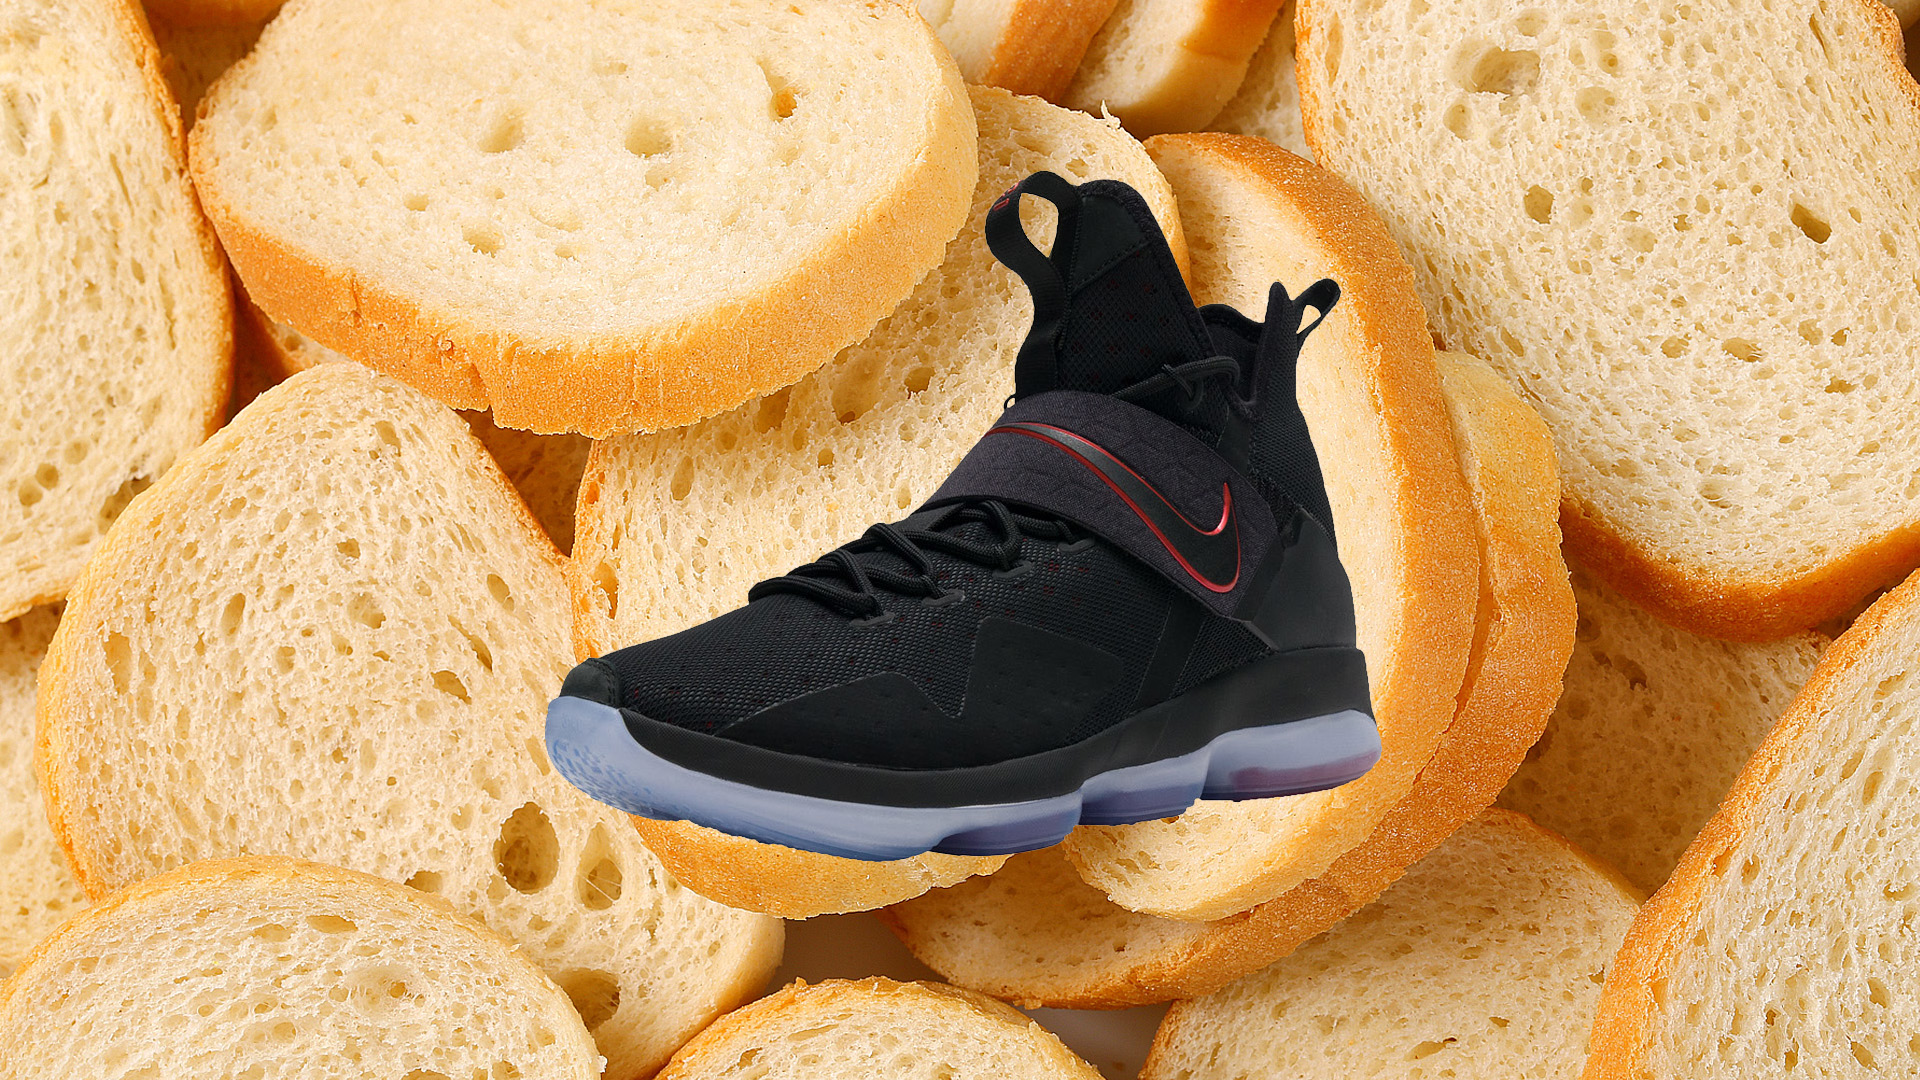 The Nike LeBron 14 in Bred is Available Now – 6